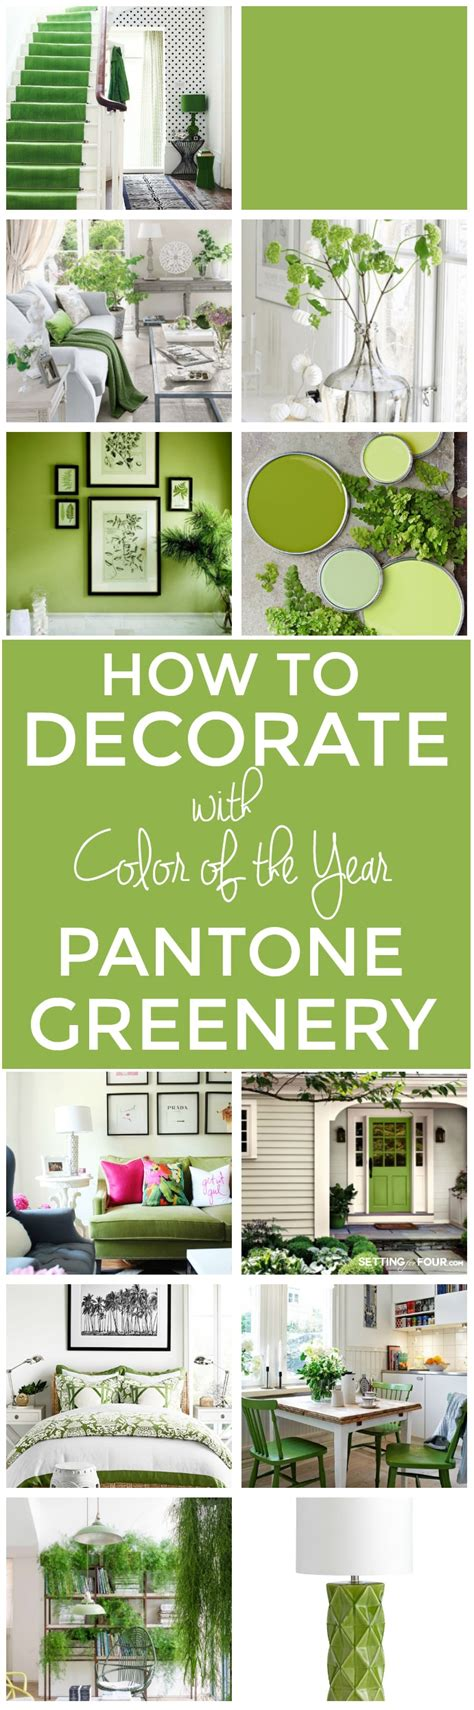 how to decorate with pantone color of the year greenery setting for four